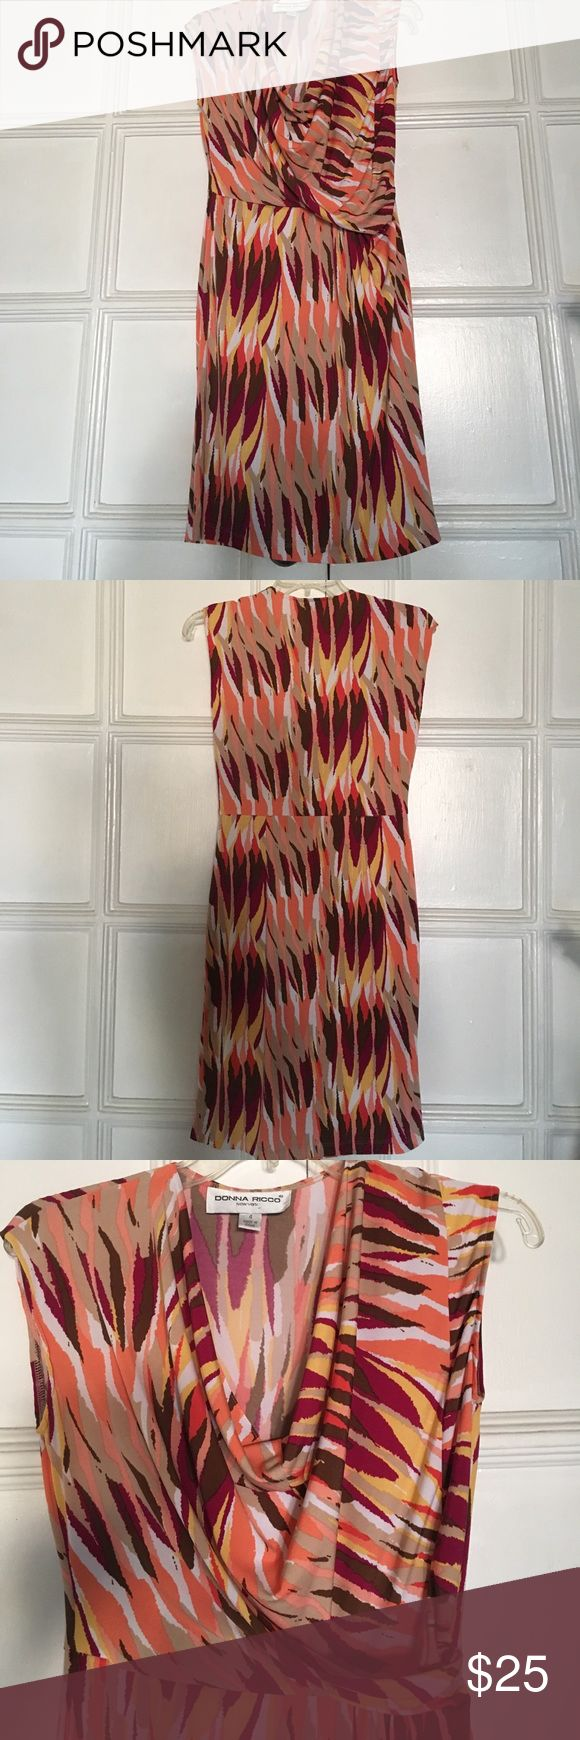 Donna Ricco cowl neck sleeveless multicolor dress Donna Ricco cowl neck sleeveless multicolor dress size 4 rich beautiful colors; gold purple orange brown coral. Very comfortable great for any occasion especially for travel. Wear with heels or flats 96% polyester 4 % spandex. Donna Ricco Dresses Midi